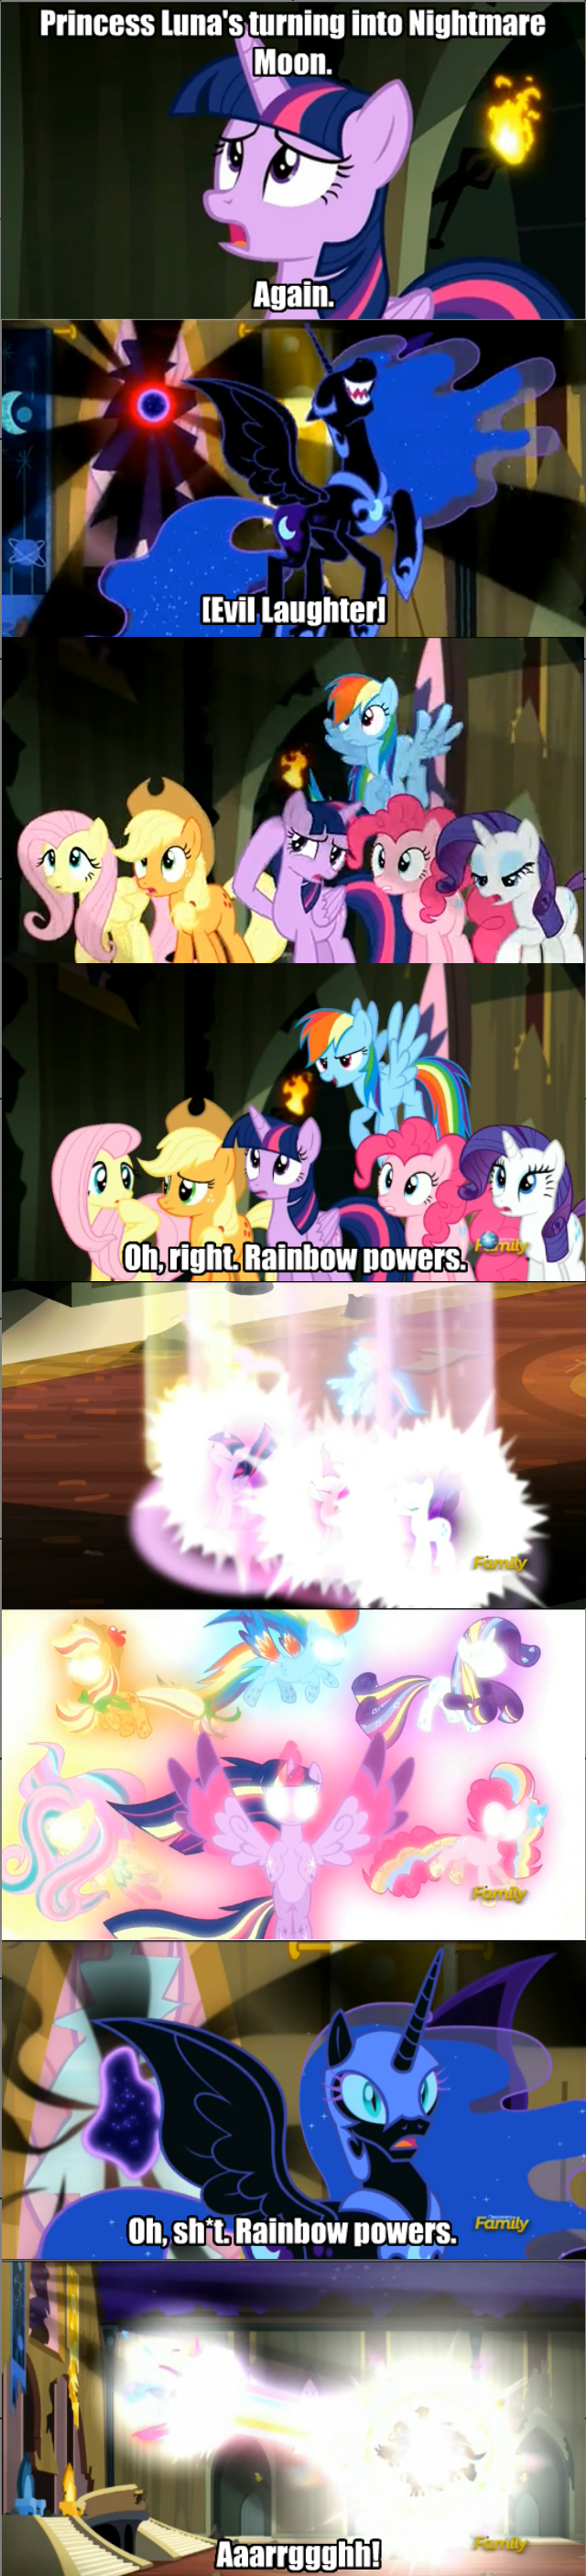 applejack nightmare moon twilight sparkle pinkie pie rarity fluttershy rainbow dash - 8582925312